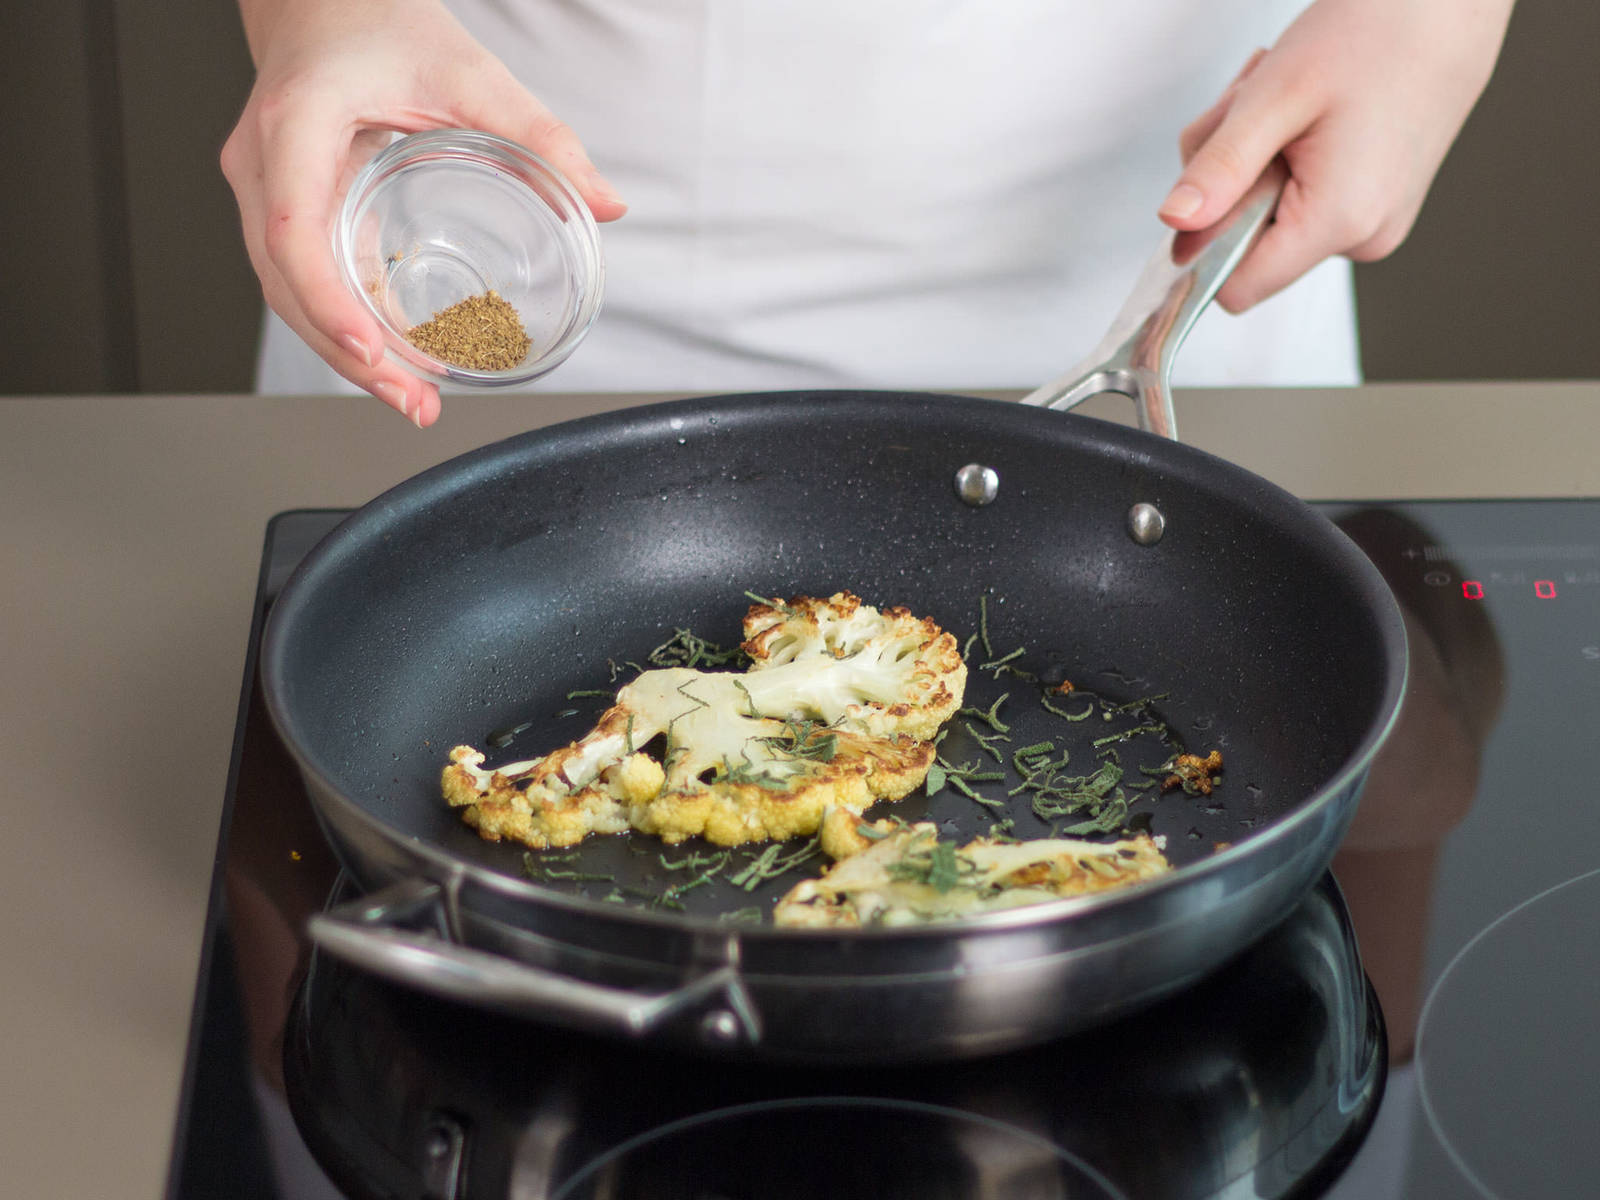 In the meantime, heat some vegetable oil in a large ovenproof frying pan. Fry cauliflower steaks over medium heat for approx. 4 - 6 min. on each side until nicely browned. Sprinkle with sage and anise.